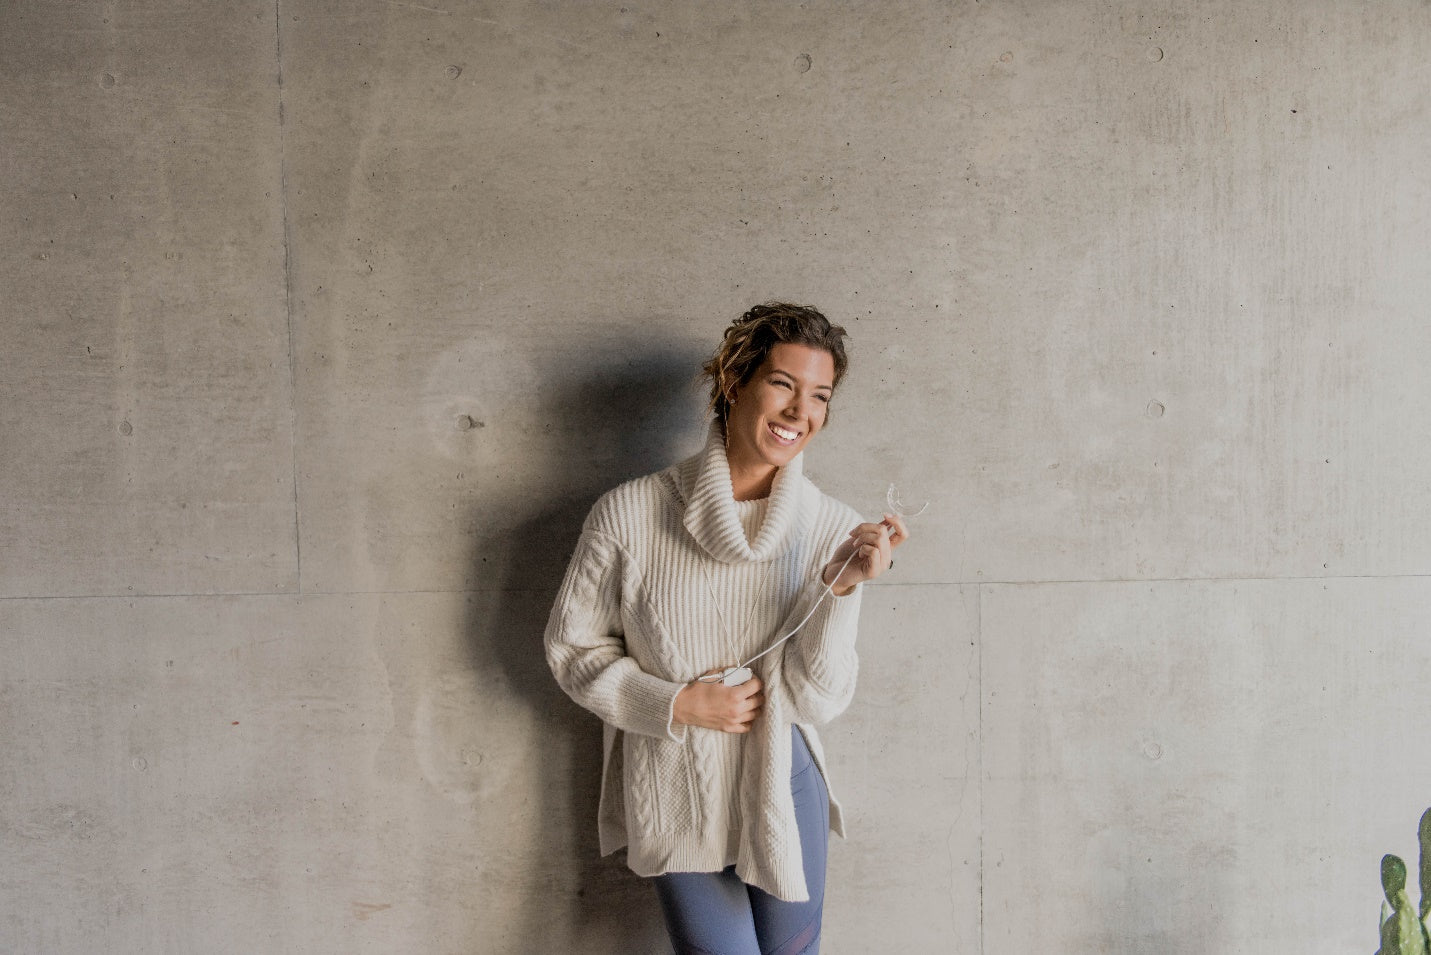 Smiling woman in an oversized sweater standing against a concrete wall while holding a GLO Brilliant teeth whitening device.